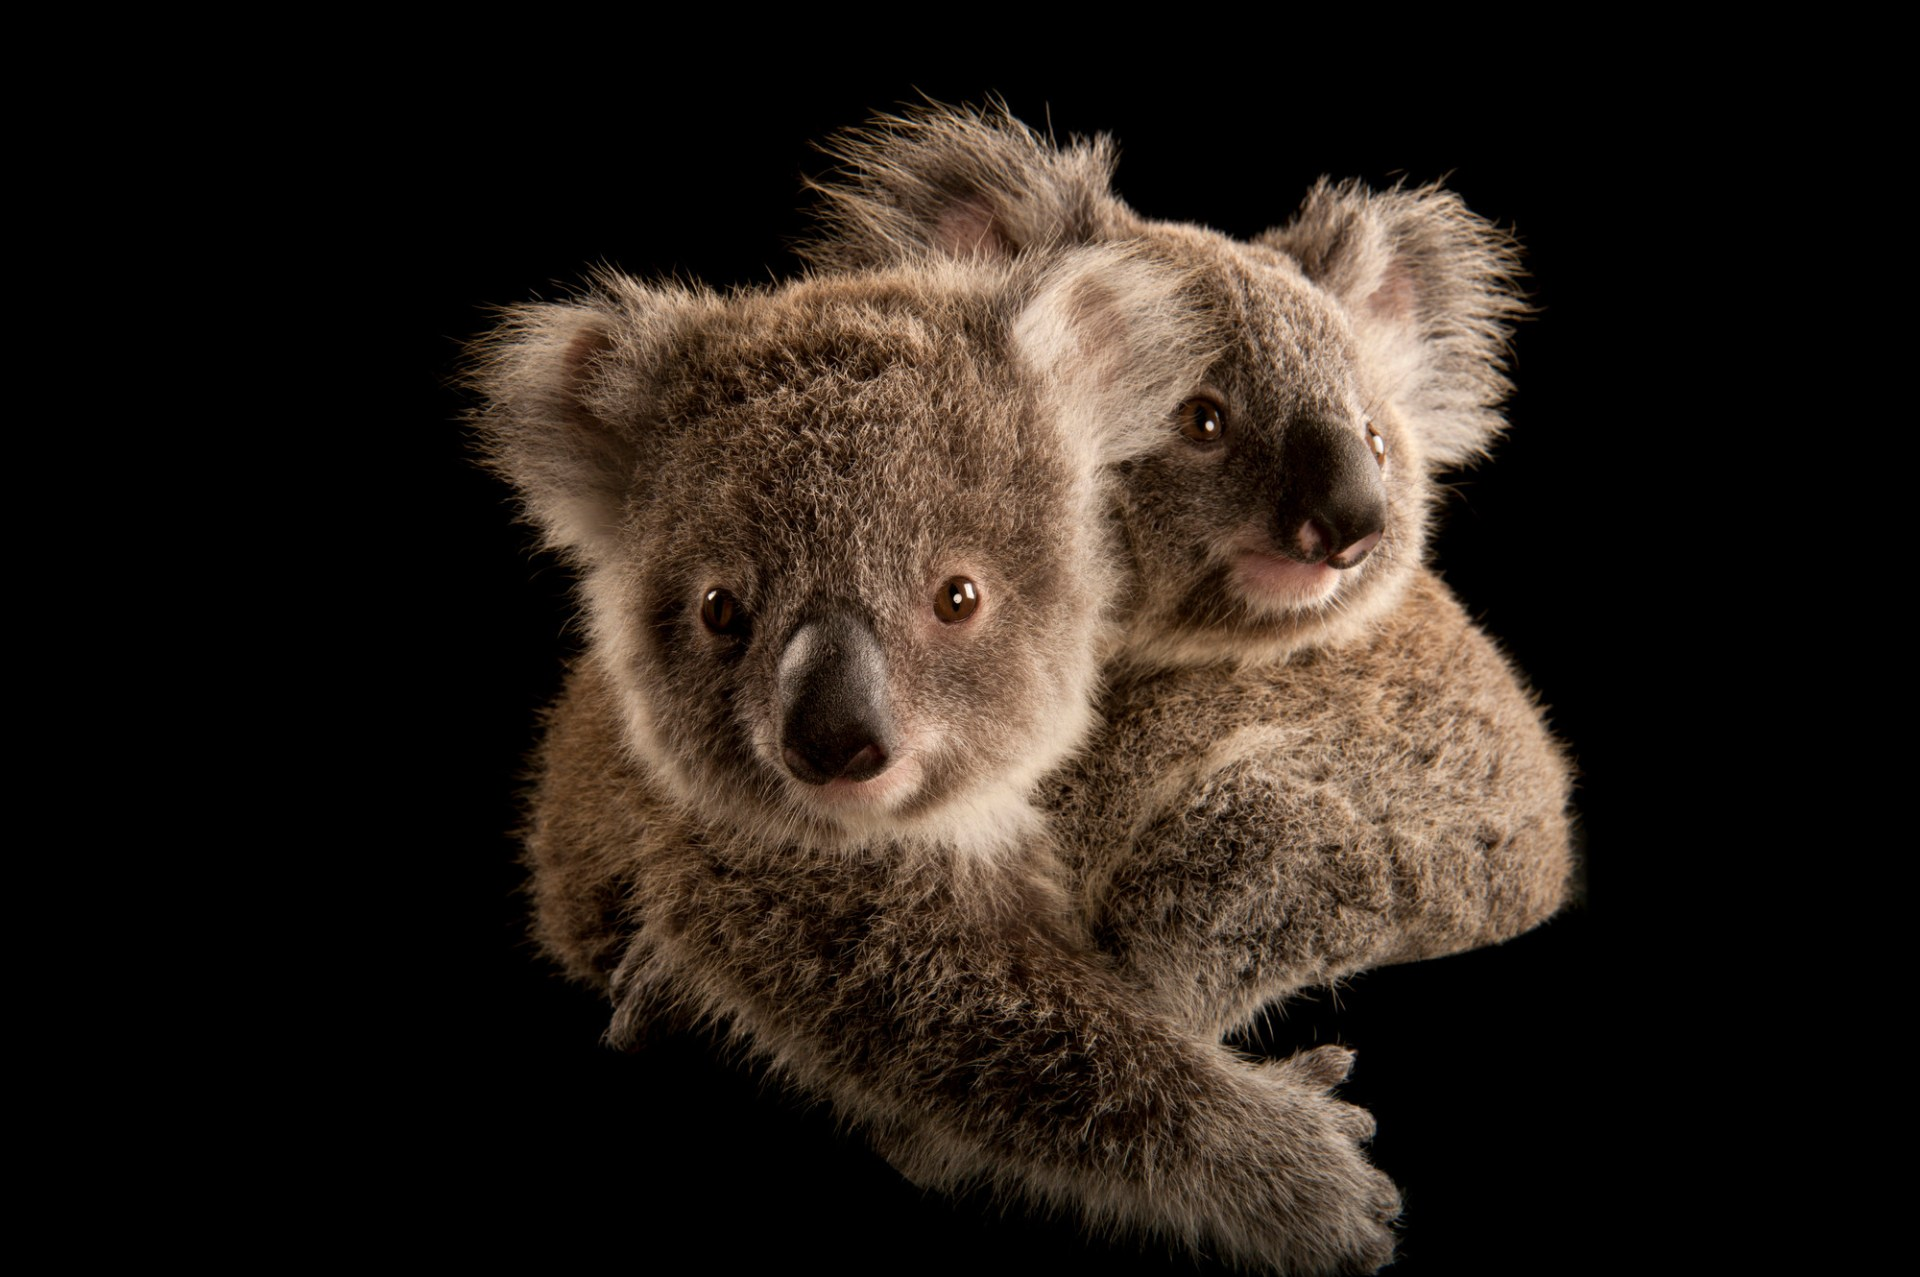 Photo: Two koala joeys cling to each other, waiting to be placed with human caregivers.